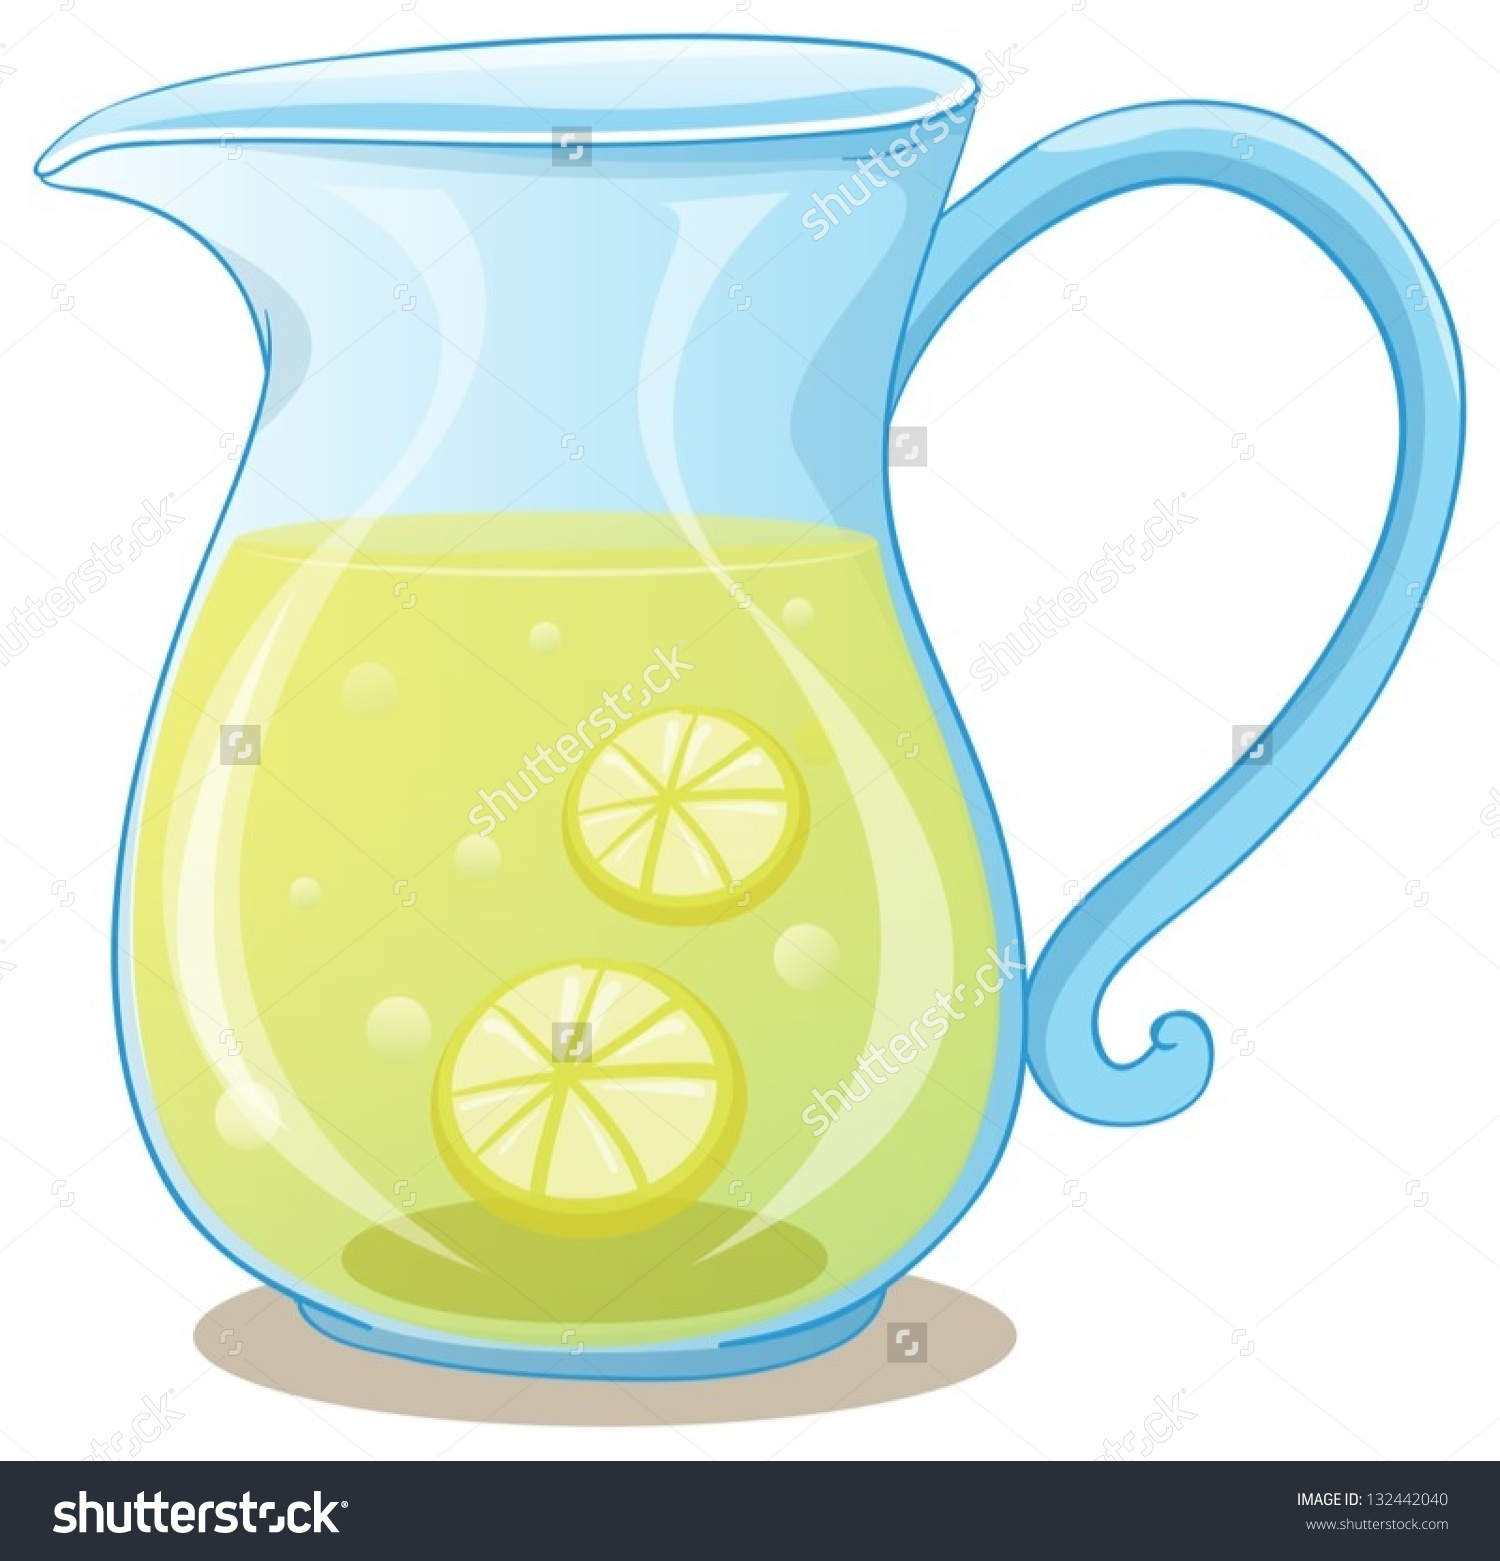 Pitcher clipart #9, Download drawings